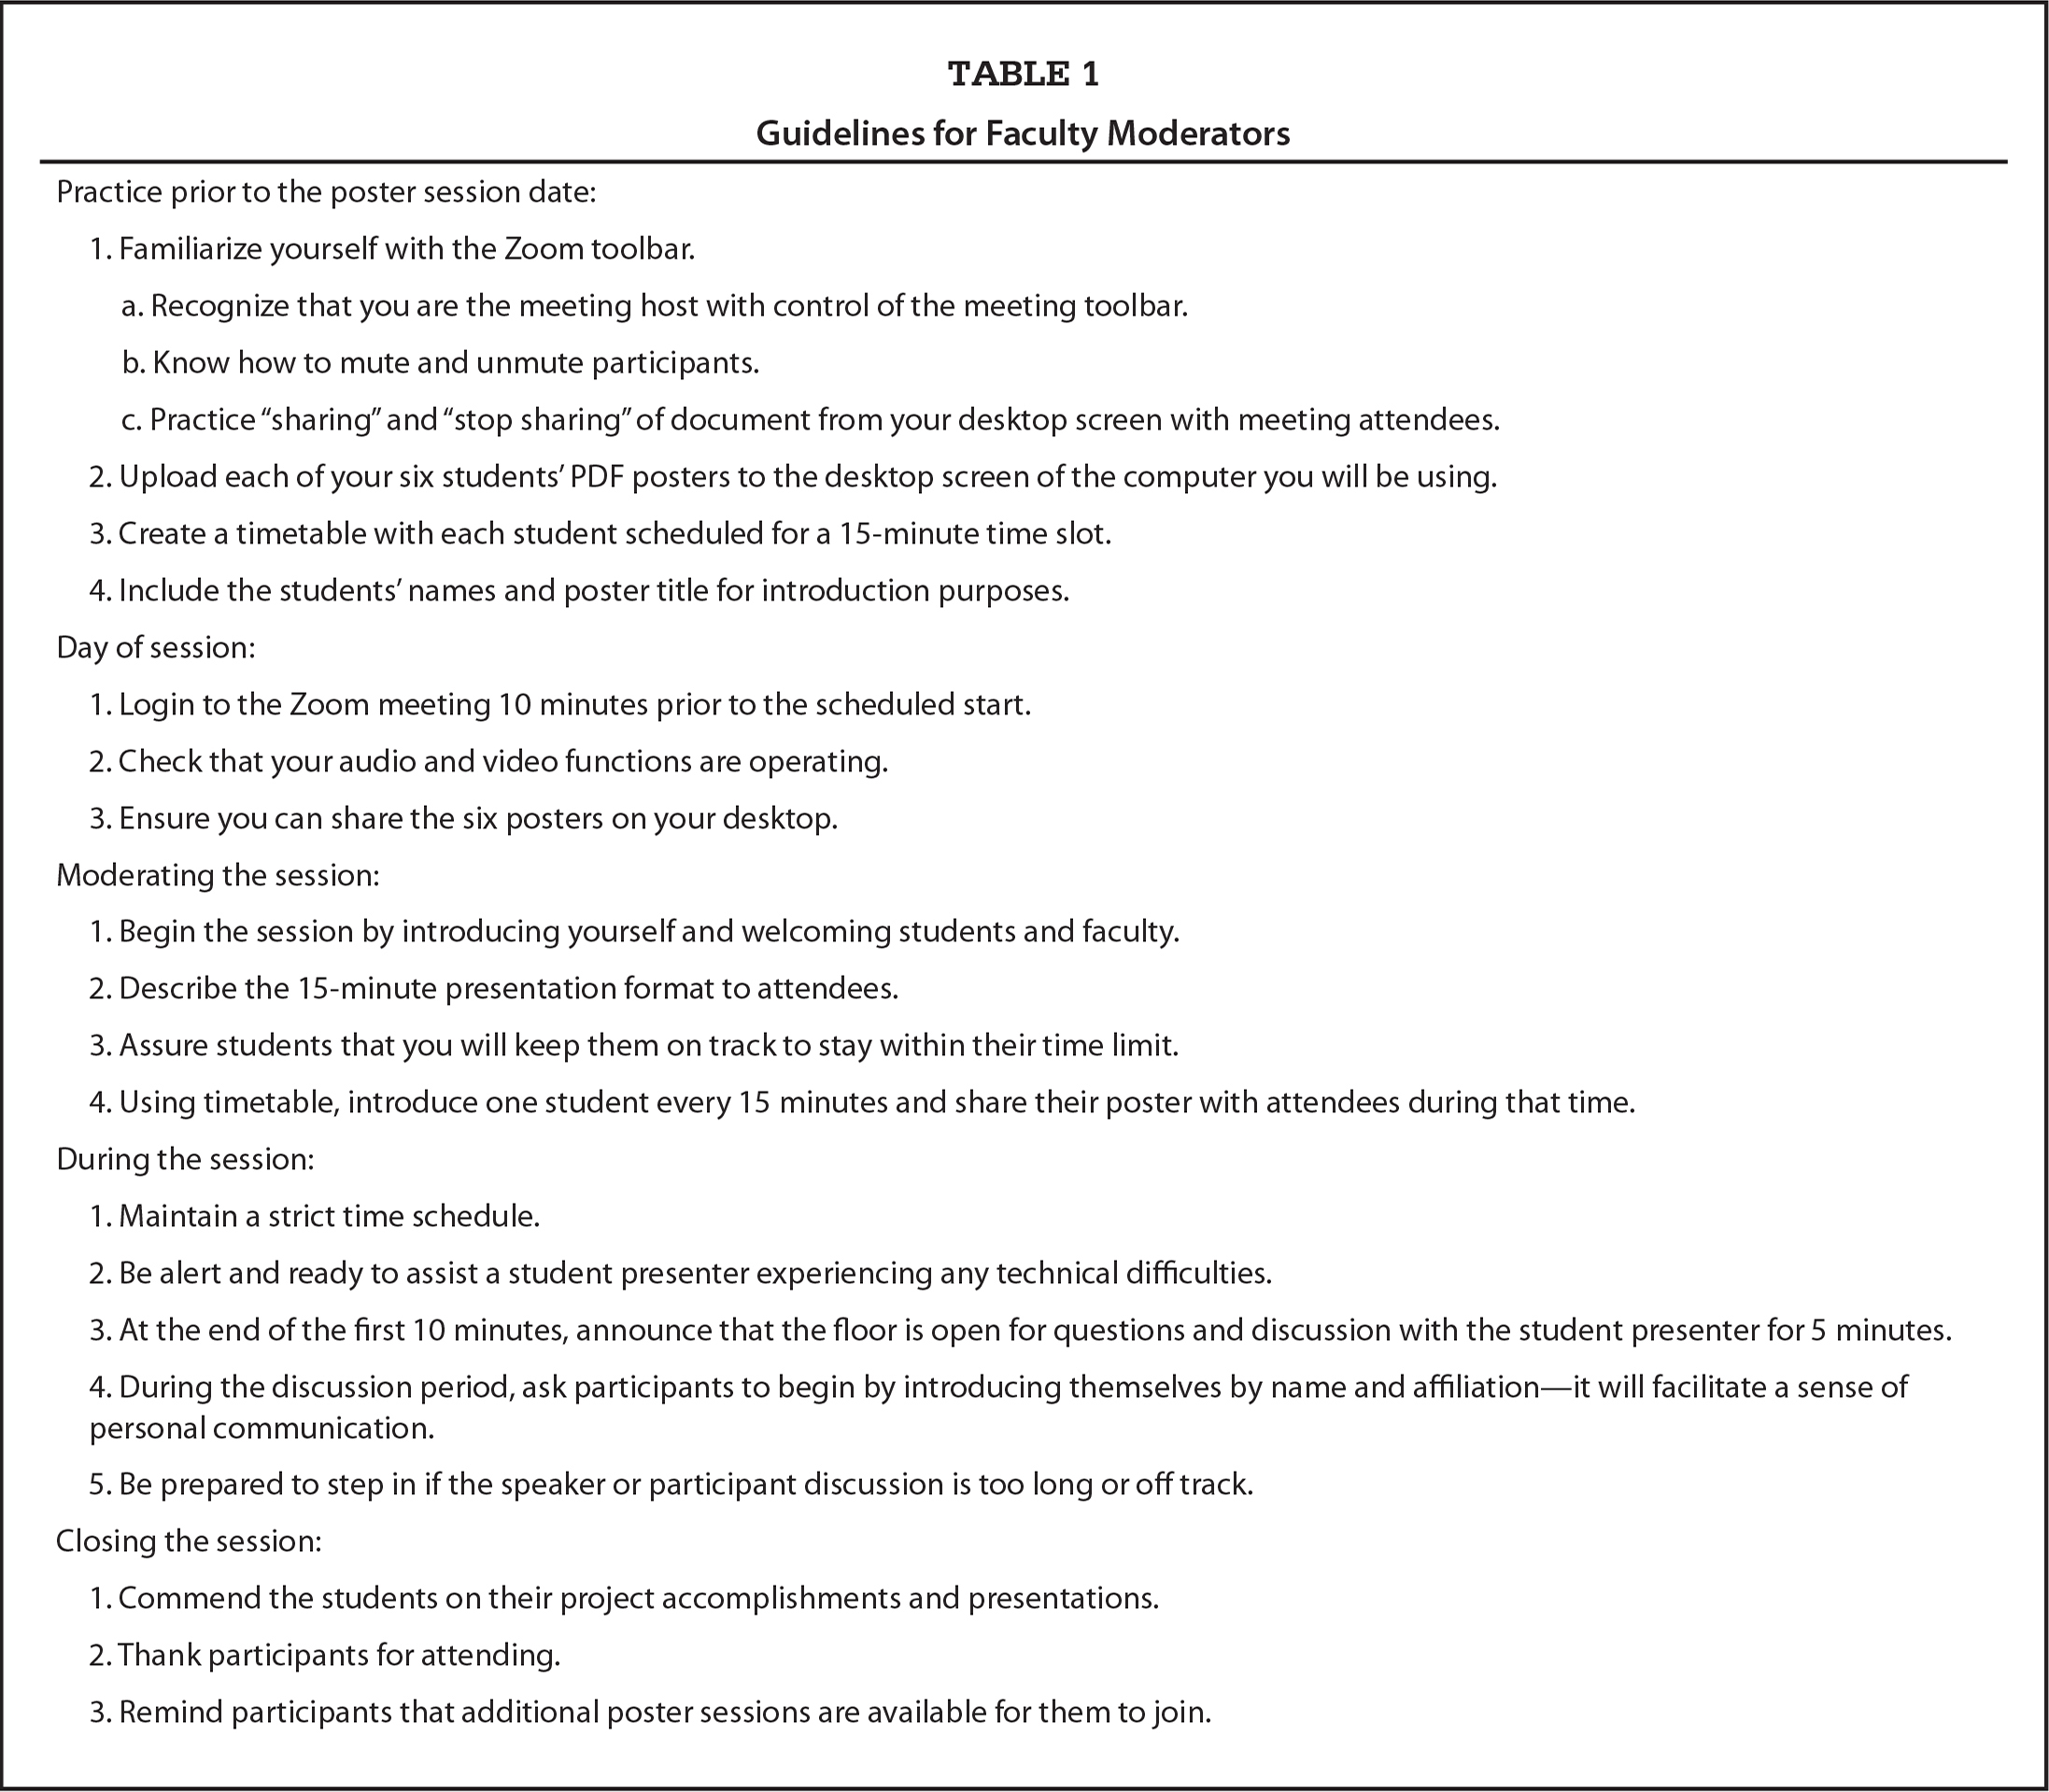 Guidelines for Faculty Moderators